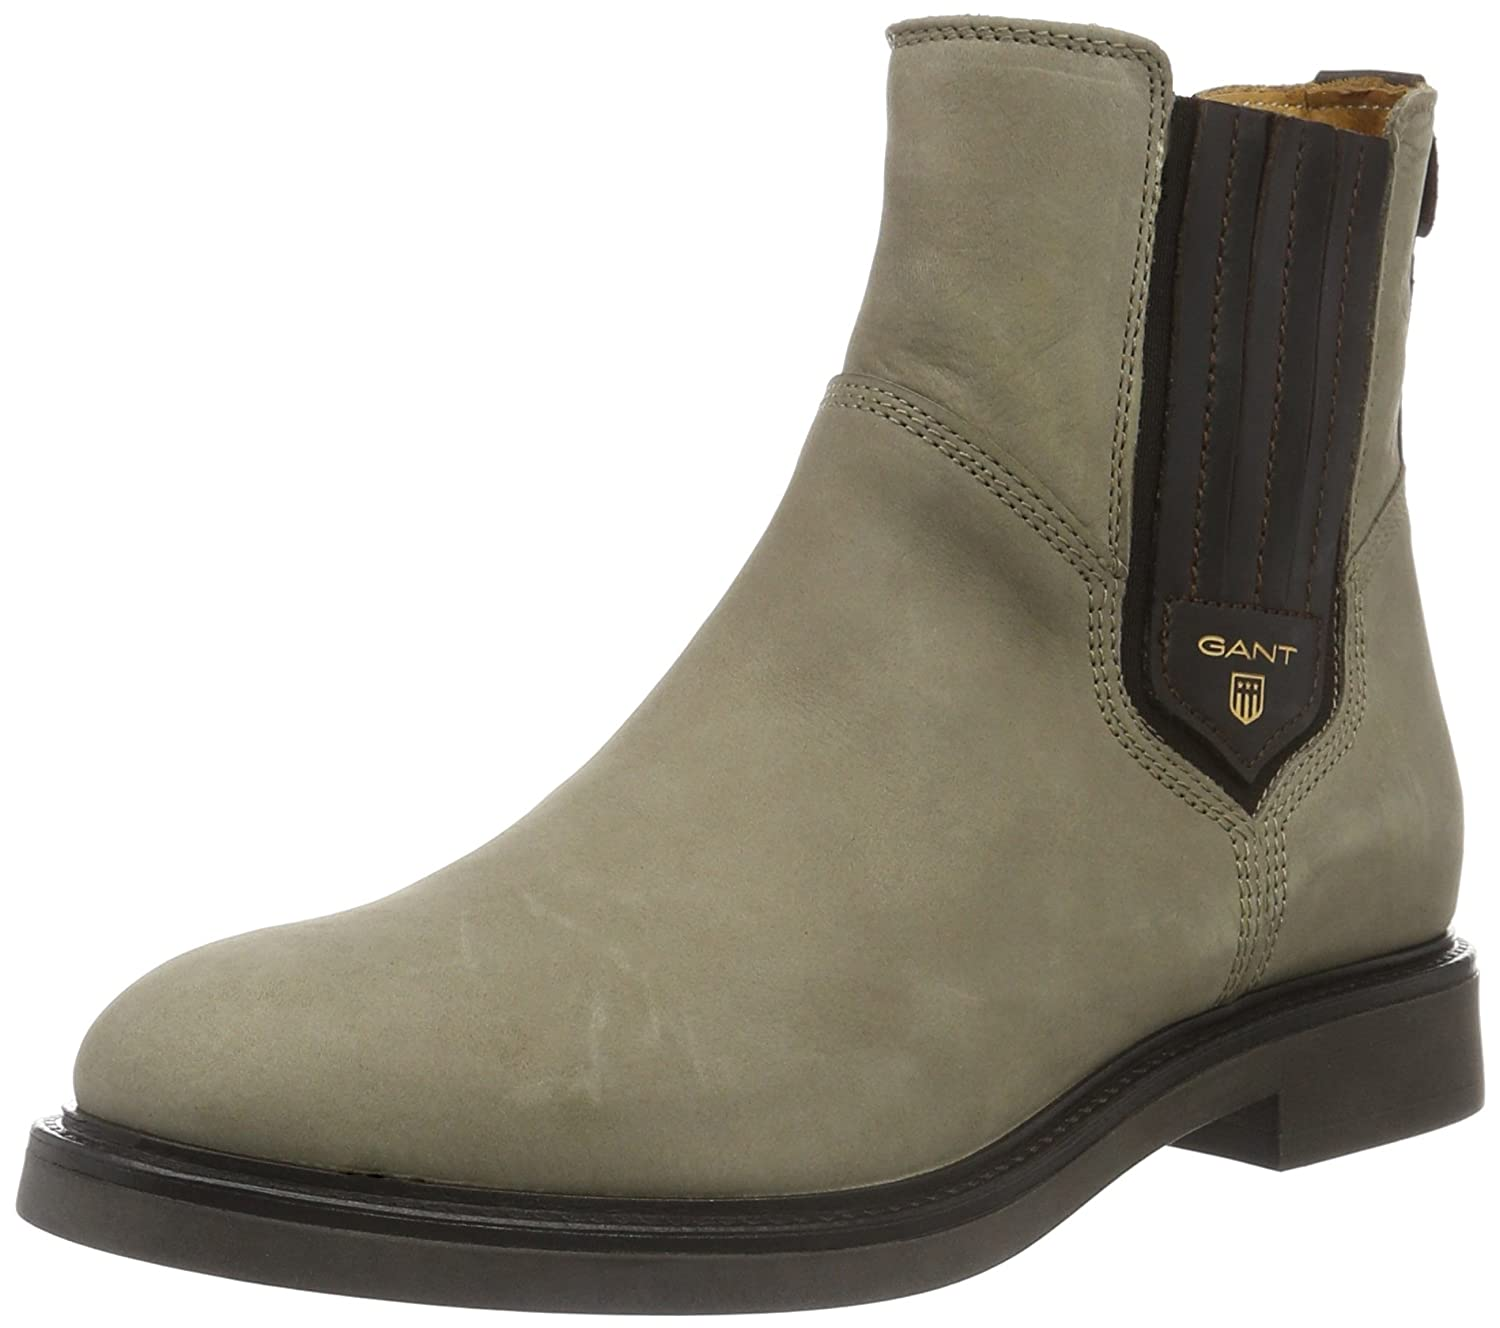 Gant Ashley G00 Black, Schuhe, Stiefel & Boots, Chelsea Boots, Schwarz, Female, 37